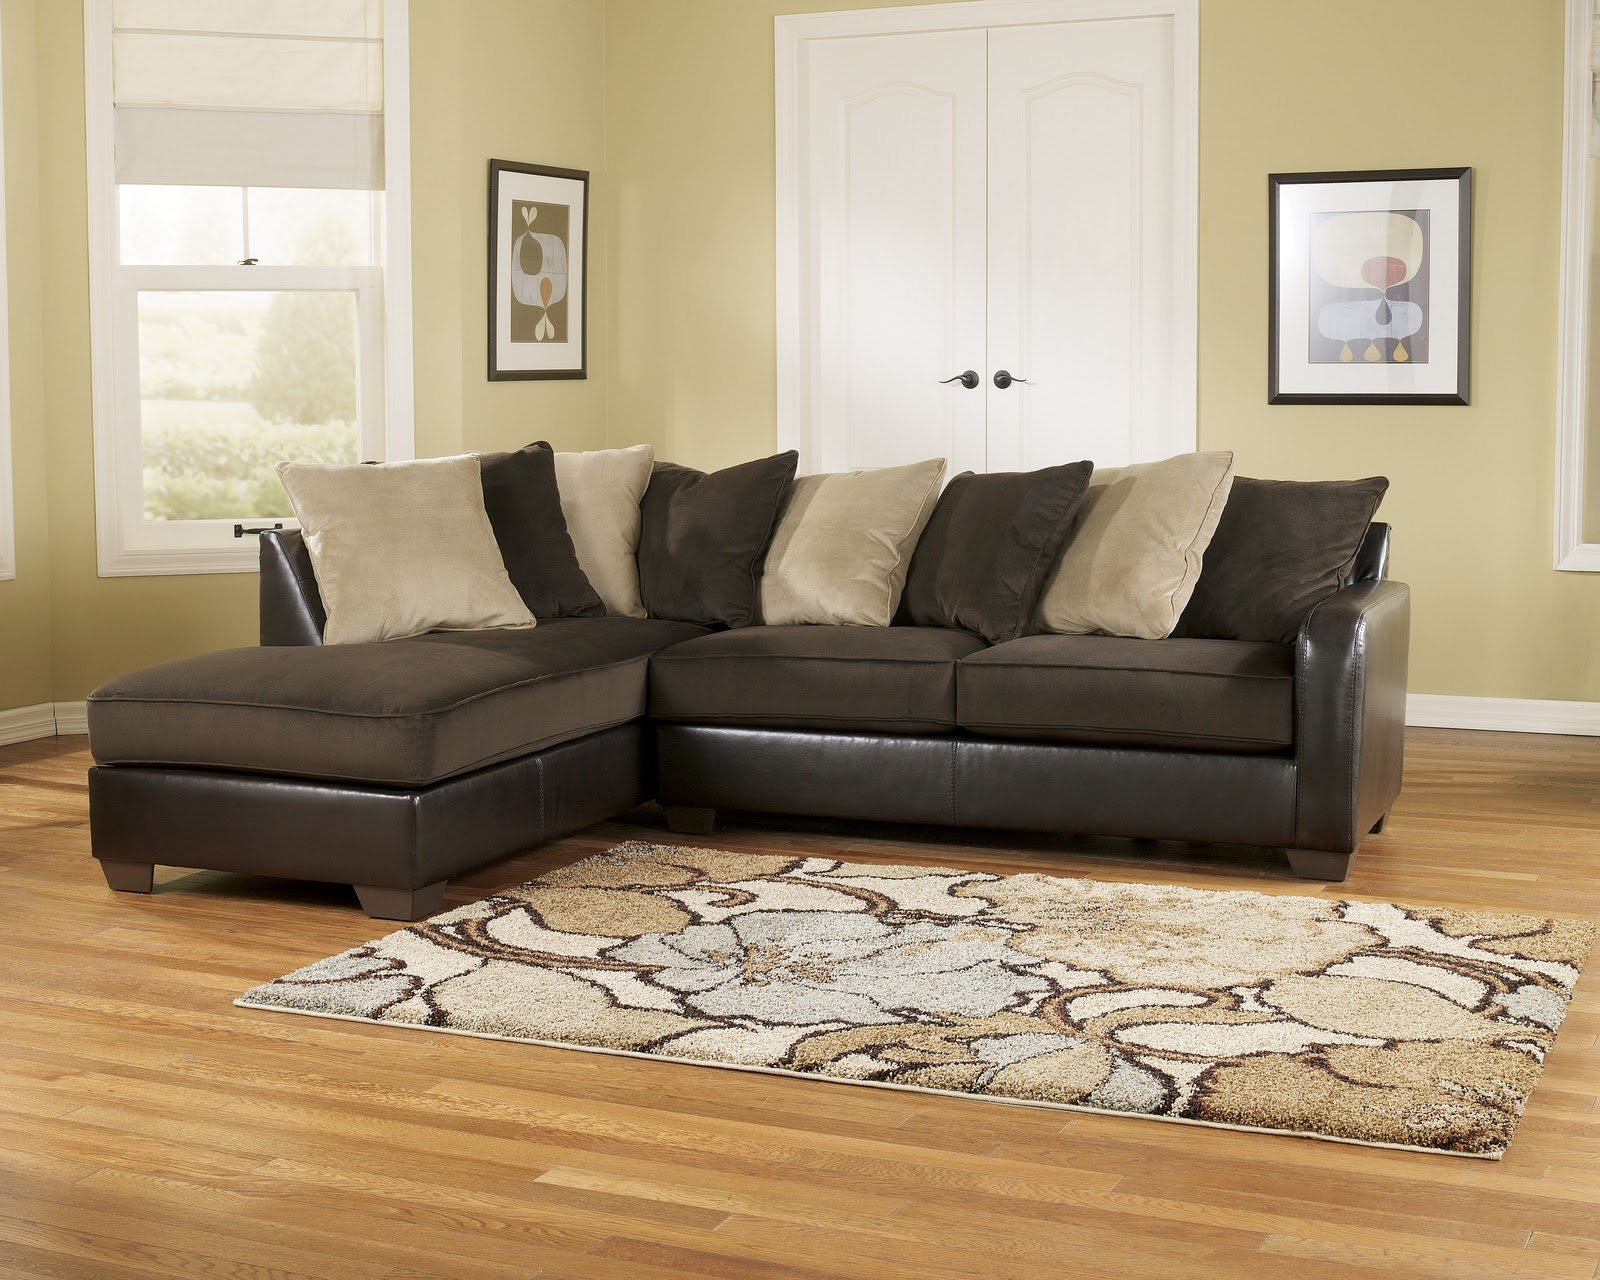 Royal Furniture Outlet  Home Furnishings for Less  Page 2